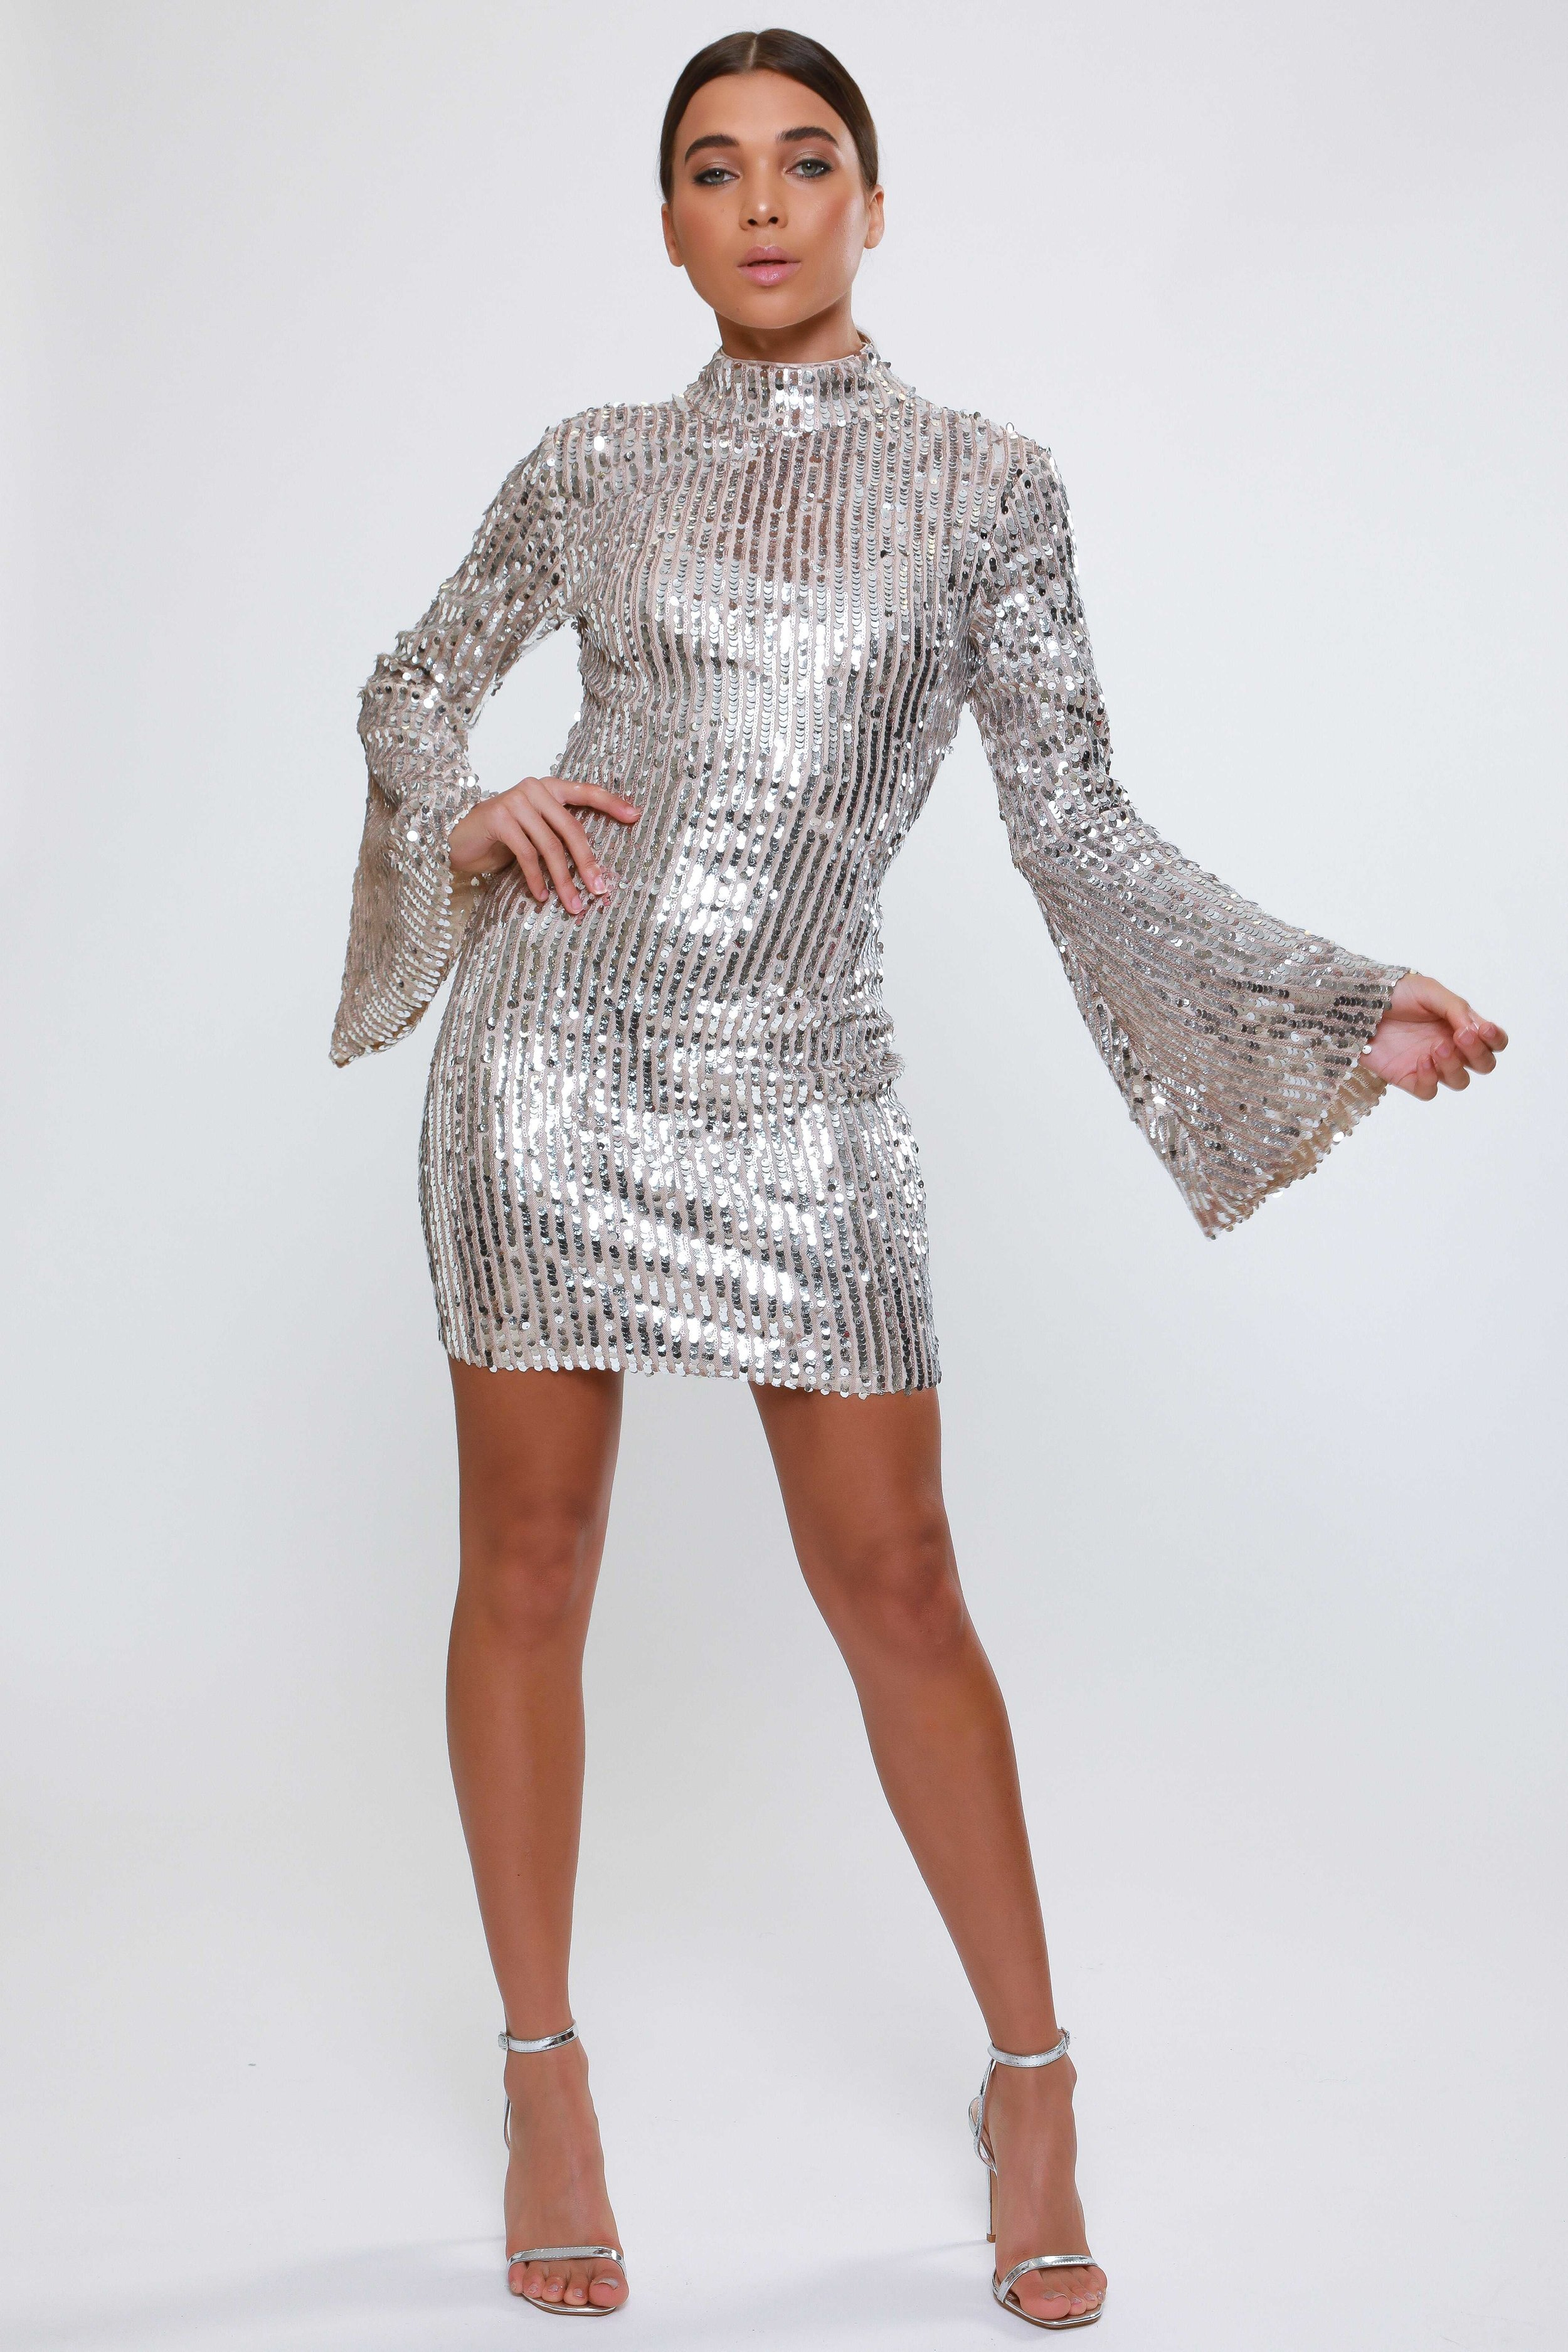 Sequin High Neck Mini Dress  with Flared Sleeves   £79.00